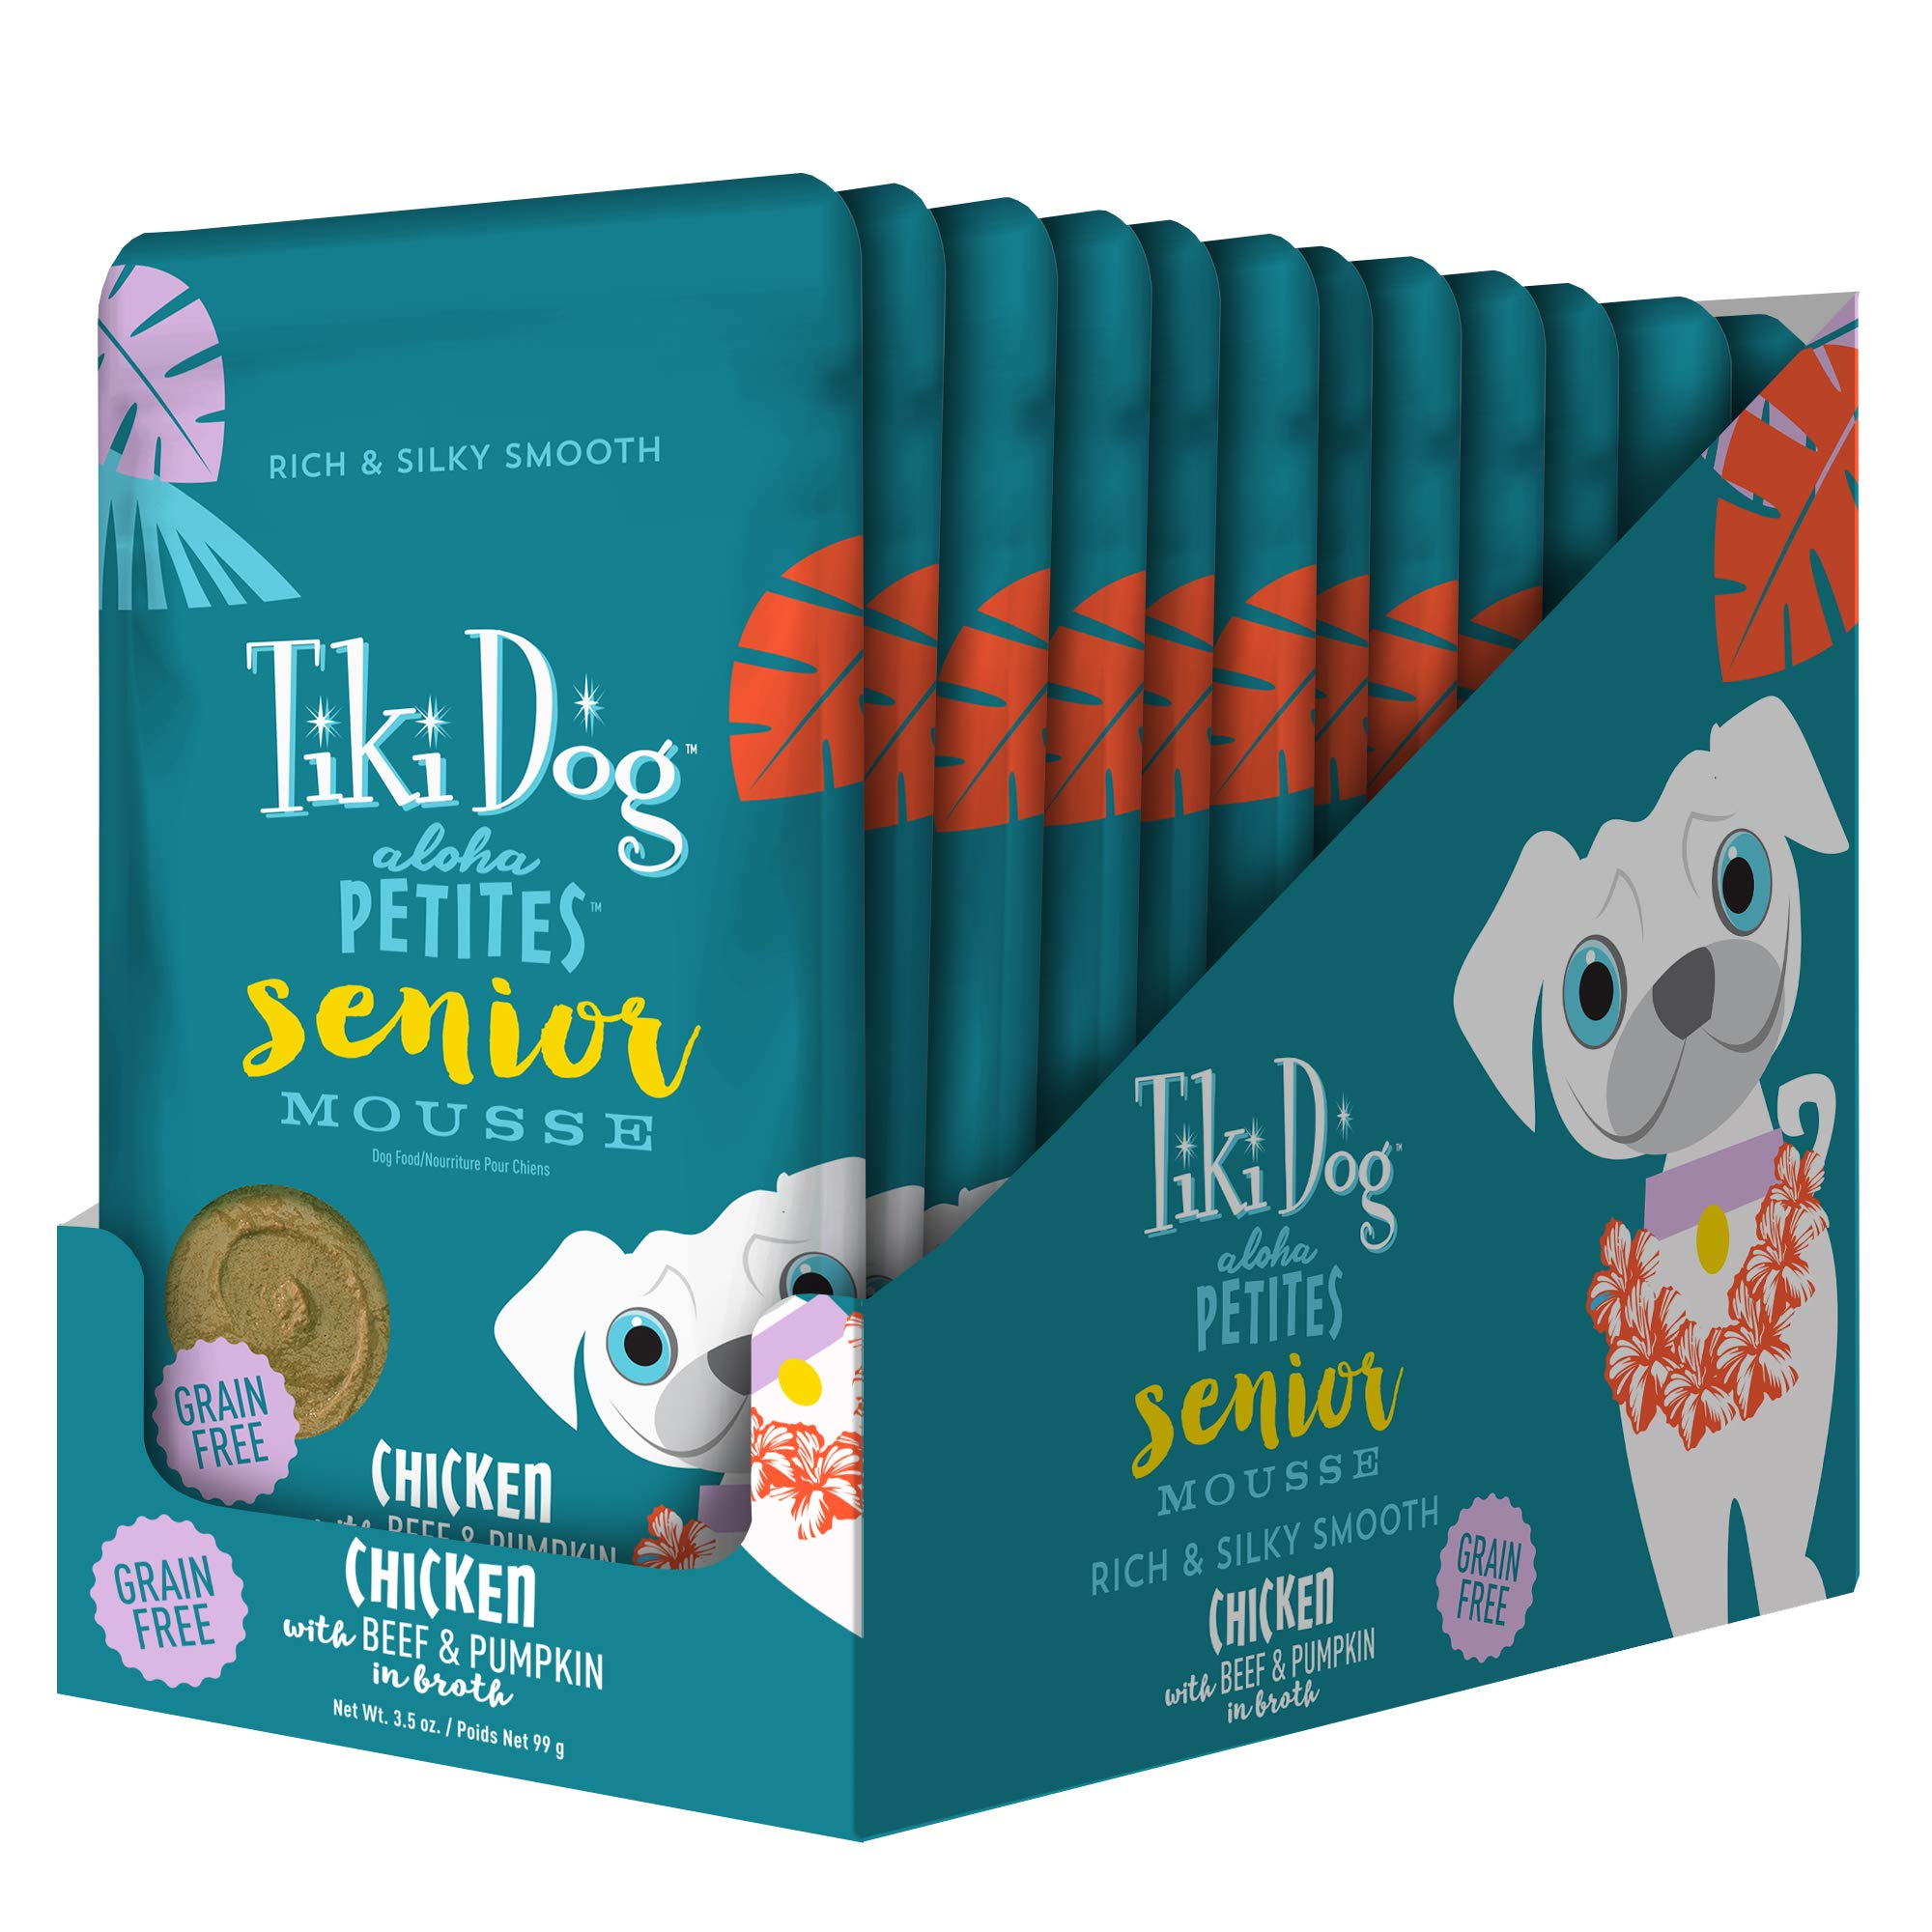 Tiki Dog Aloha Petites Gluten & Grain Free Wet Food for Adult Dogs with Shredded Meat & Superfoods, 3.5oz pouch, 12 pk, Senior by TIKI PETS